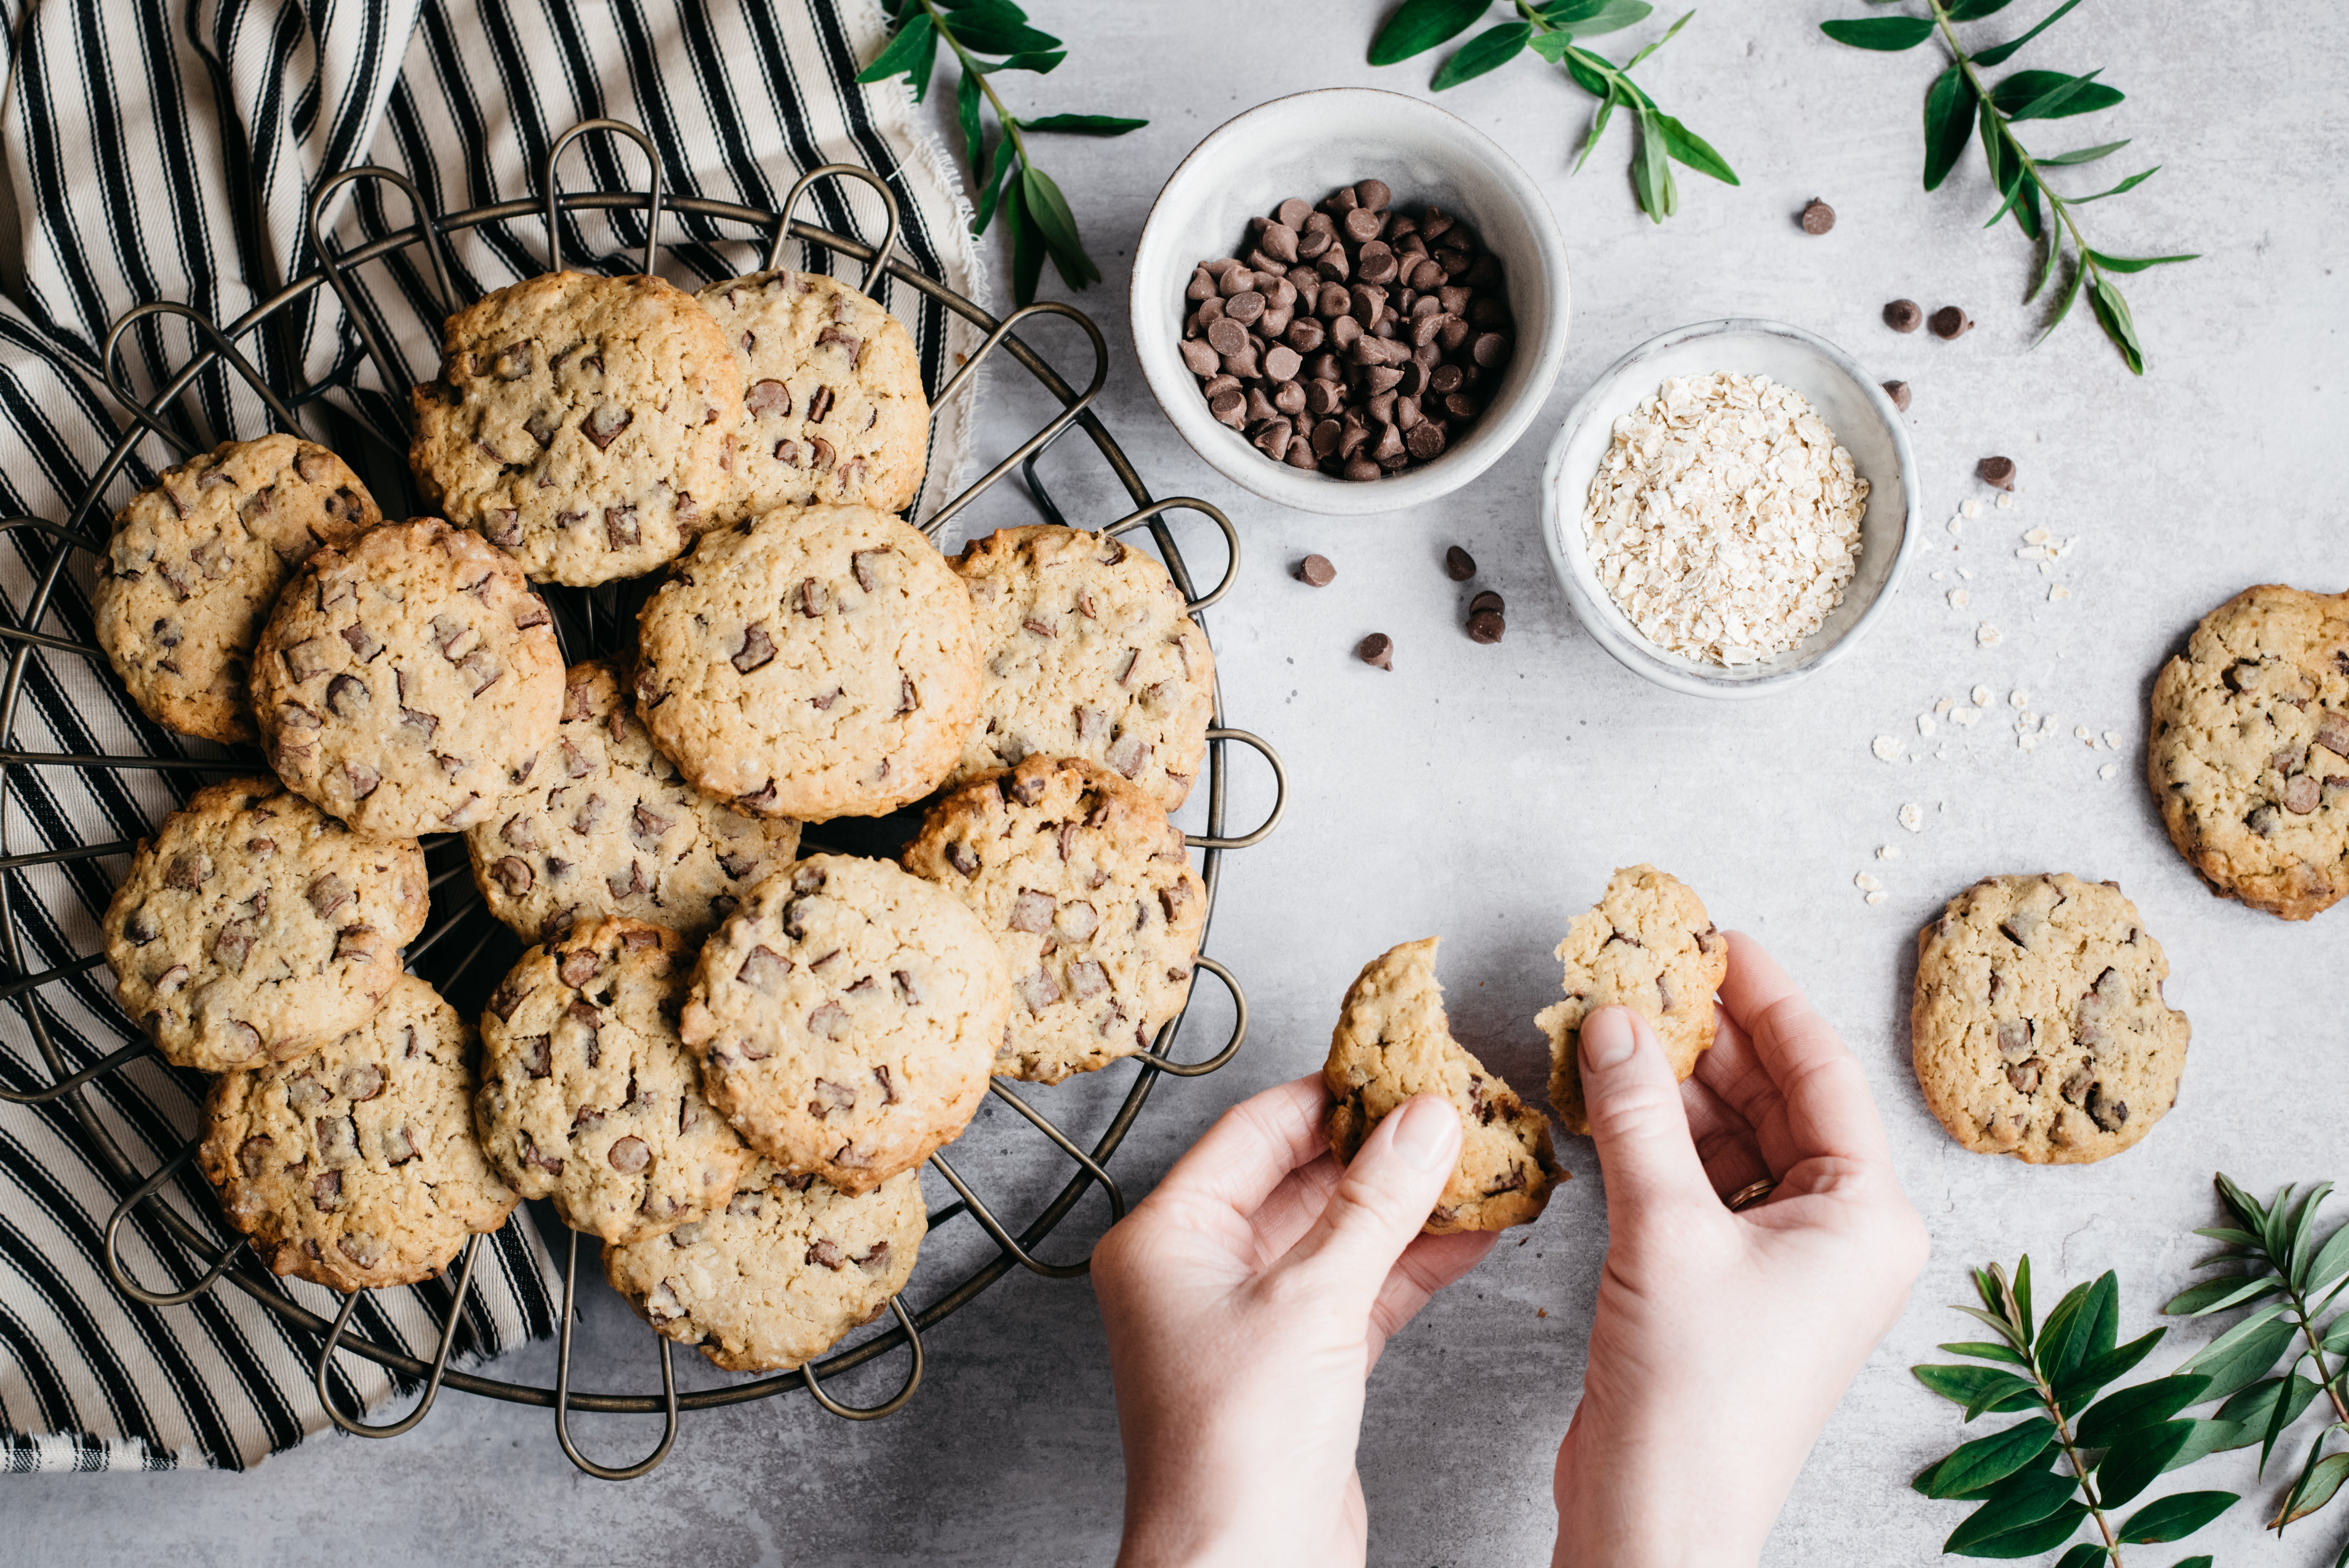 birds-eye view of cookies with hands snapping one in half